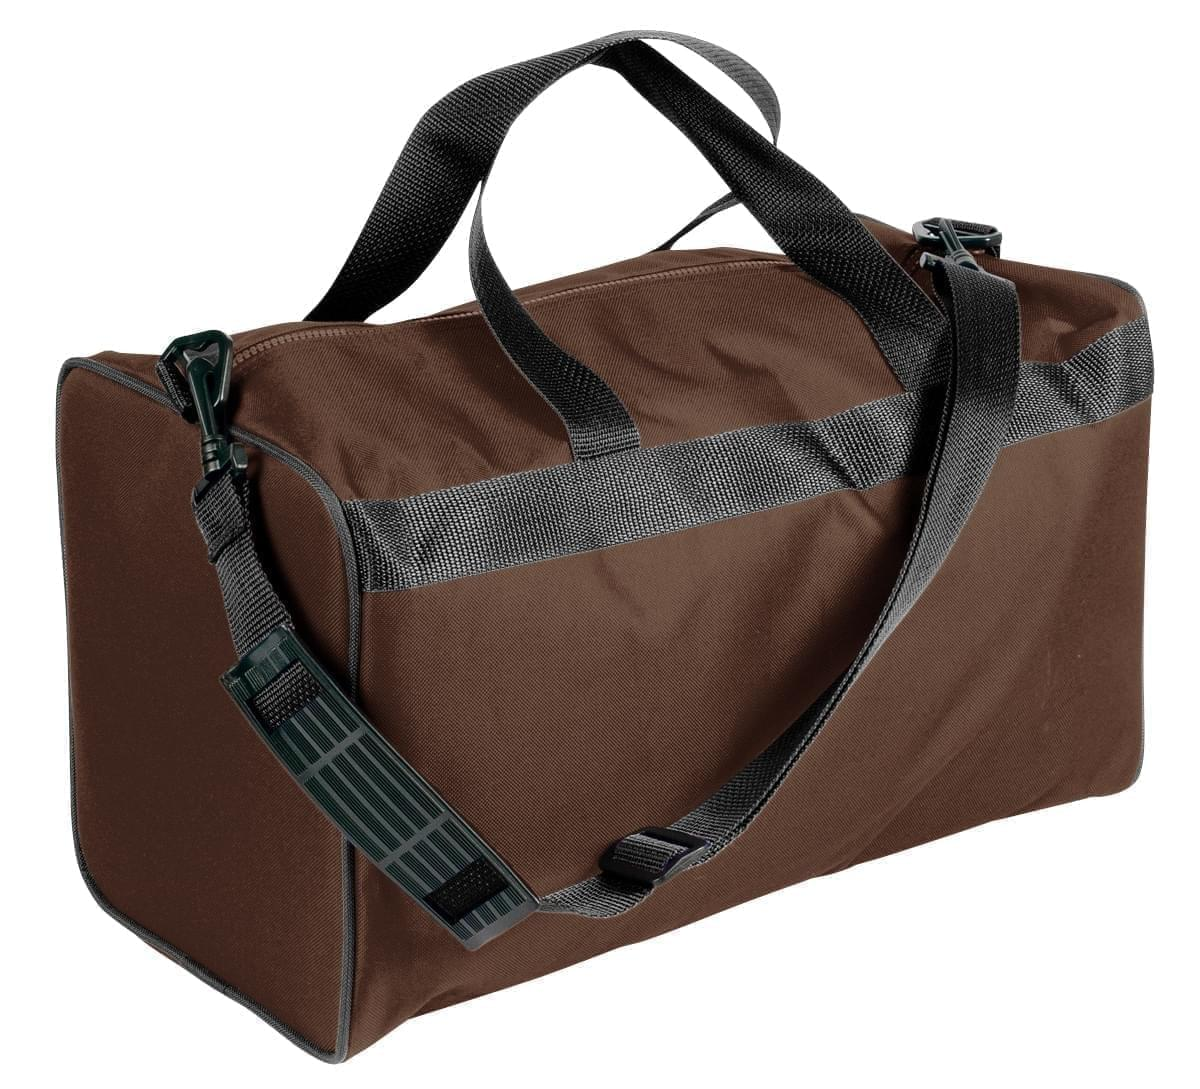 USA Made Nylon Poly Weekend Duffles, Brown-Black, WLKX31AAPR